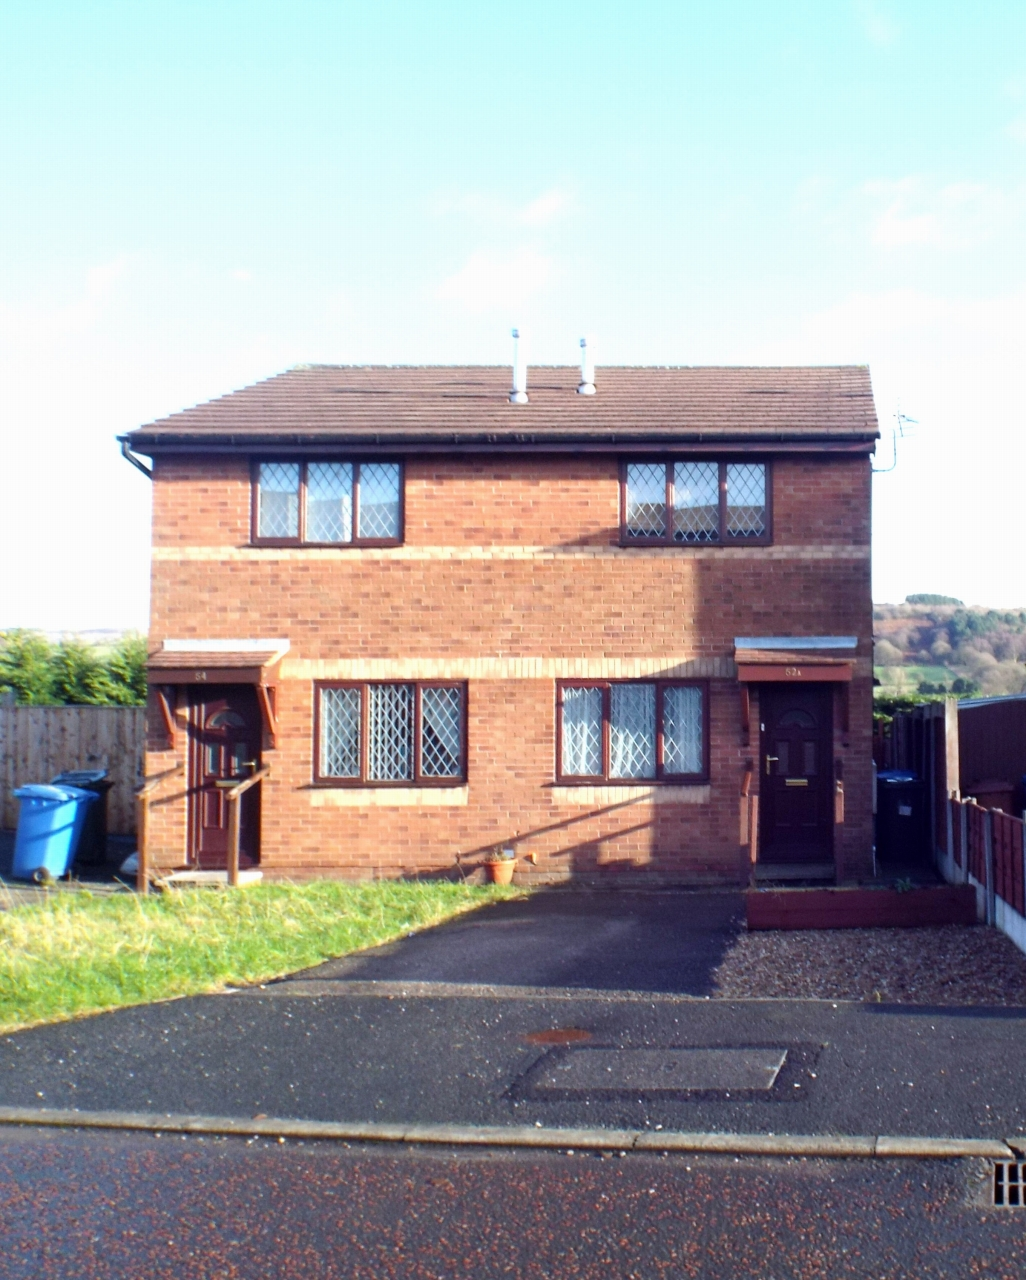 2 bedroom semi-detached house in Chorley - Property photograph.